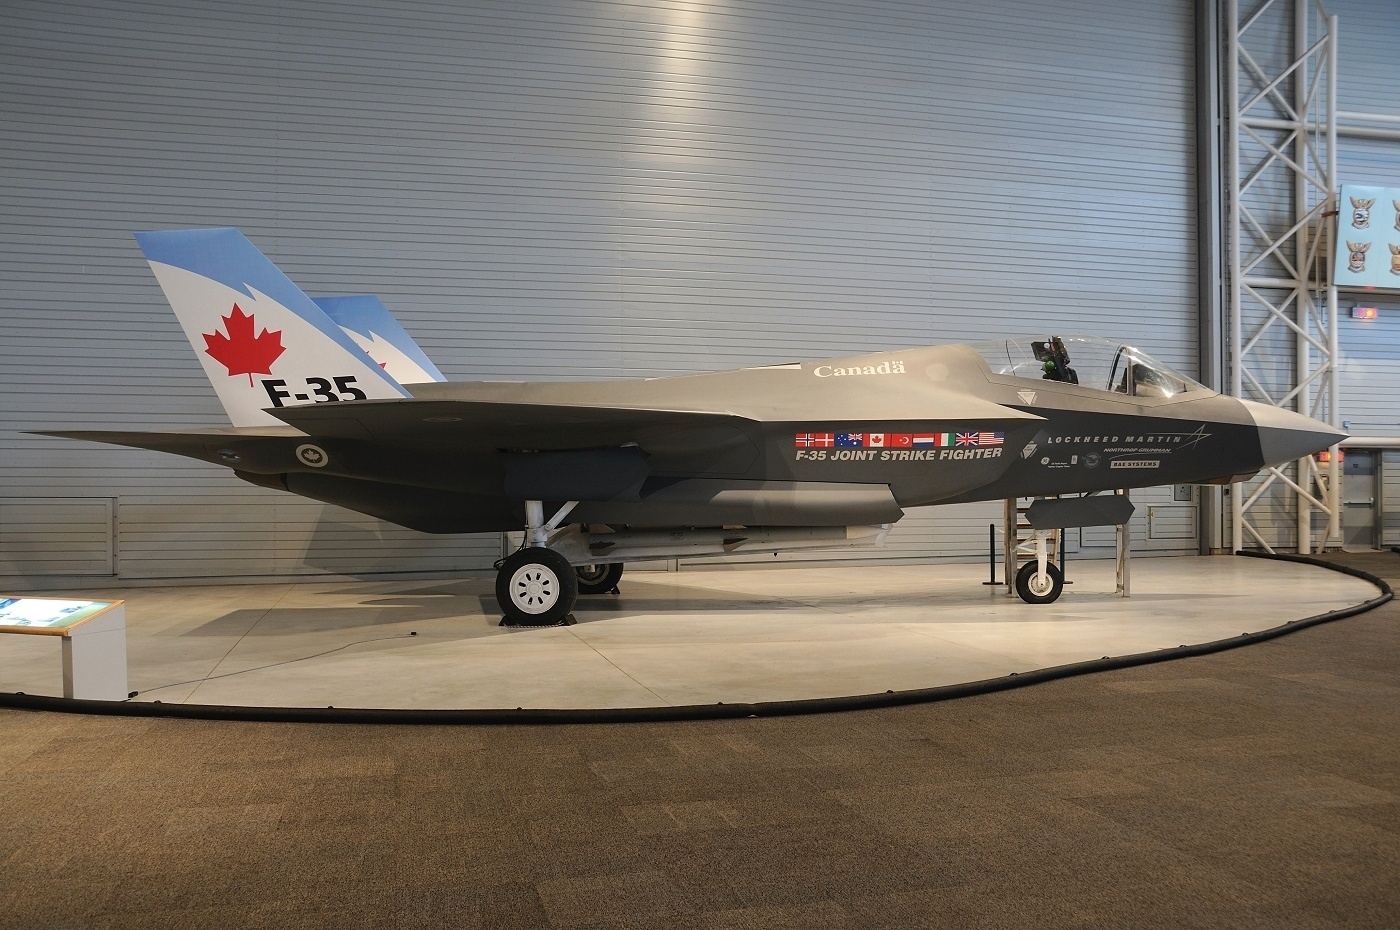 lockheed_martin_f-35_lightning_ii_28mock-up292c_canada_-_air_force_an1753011